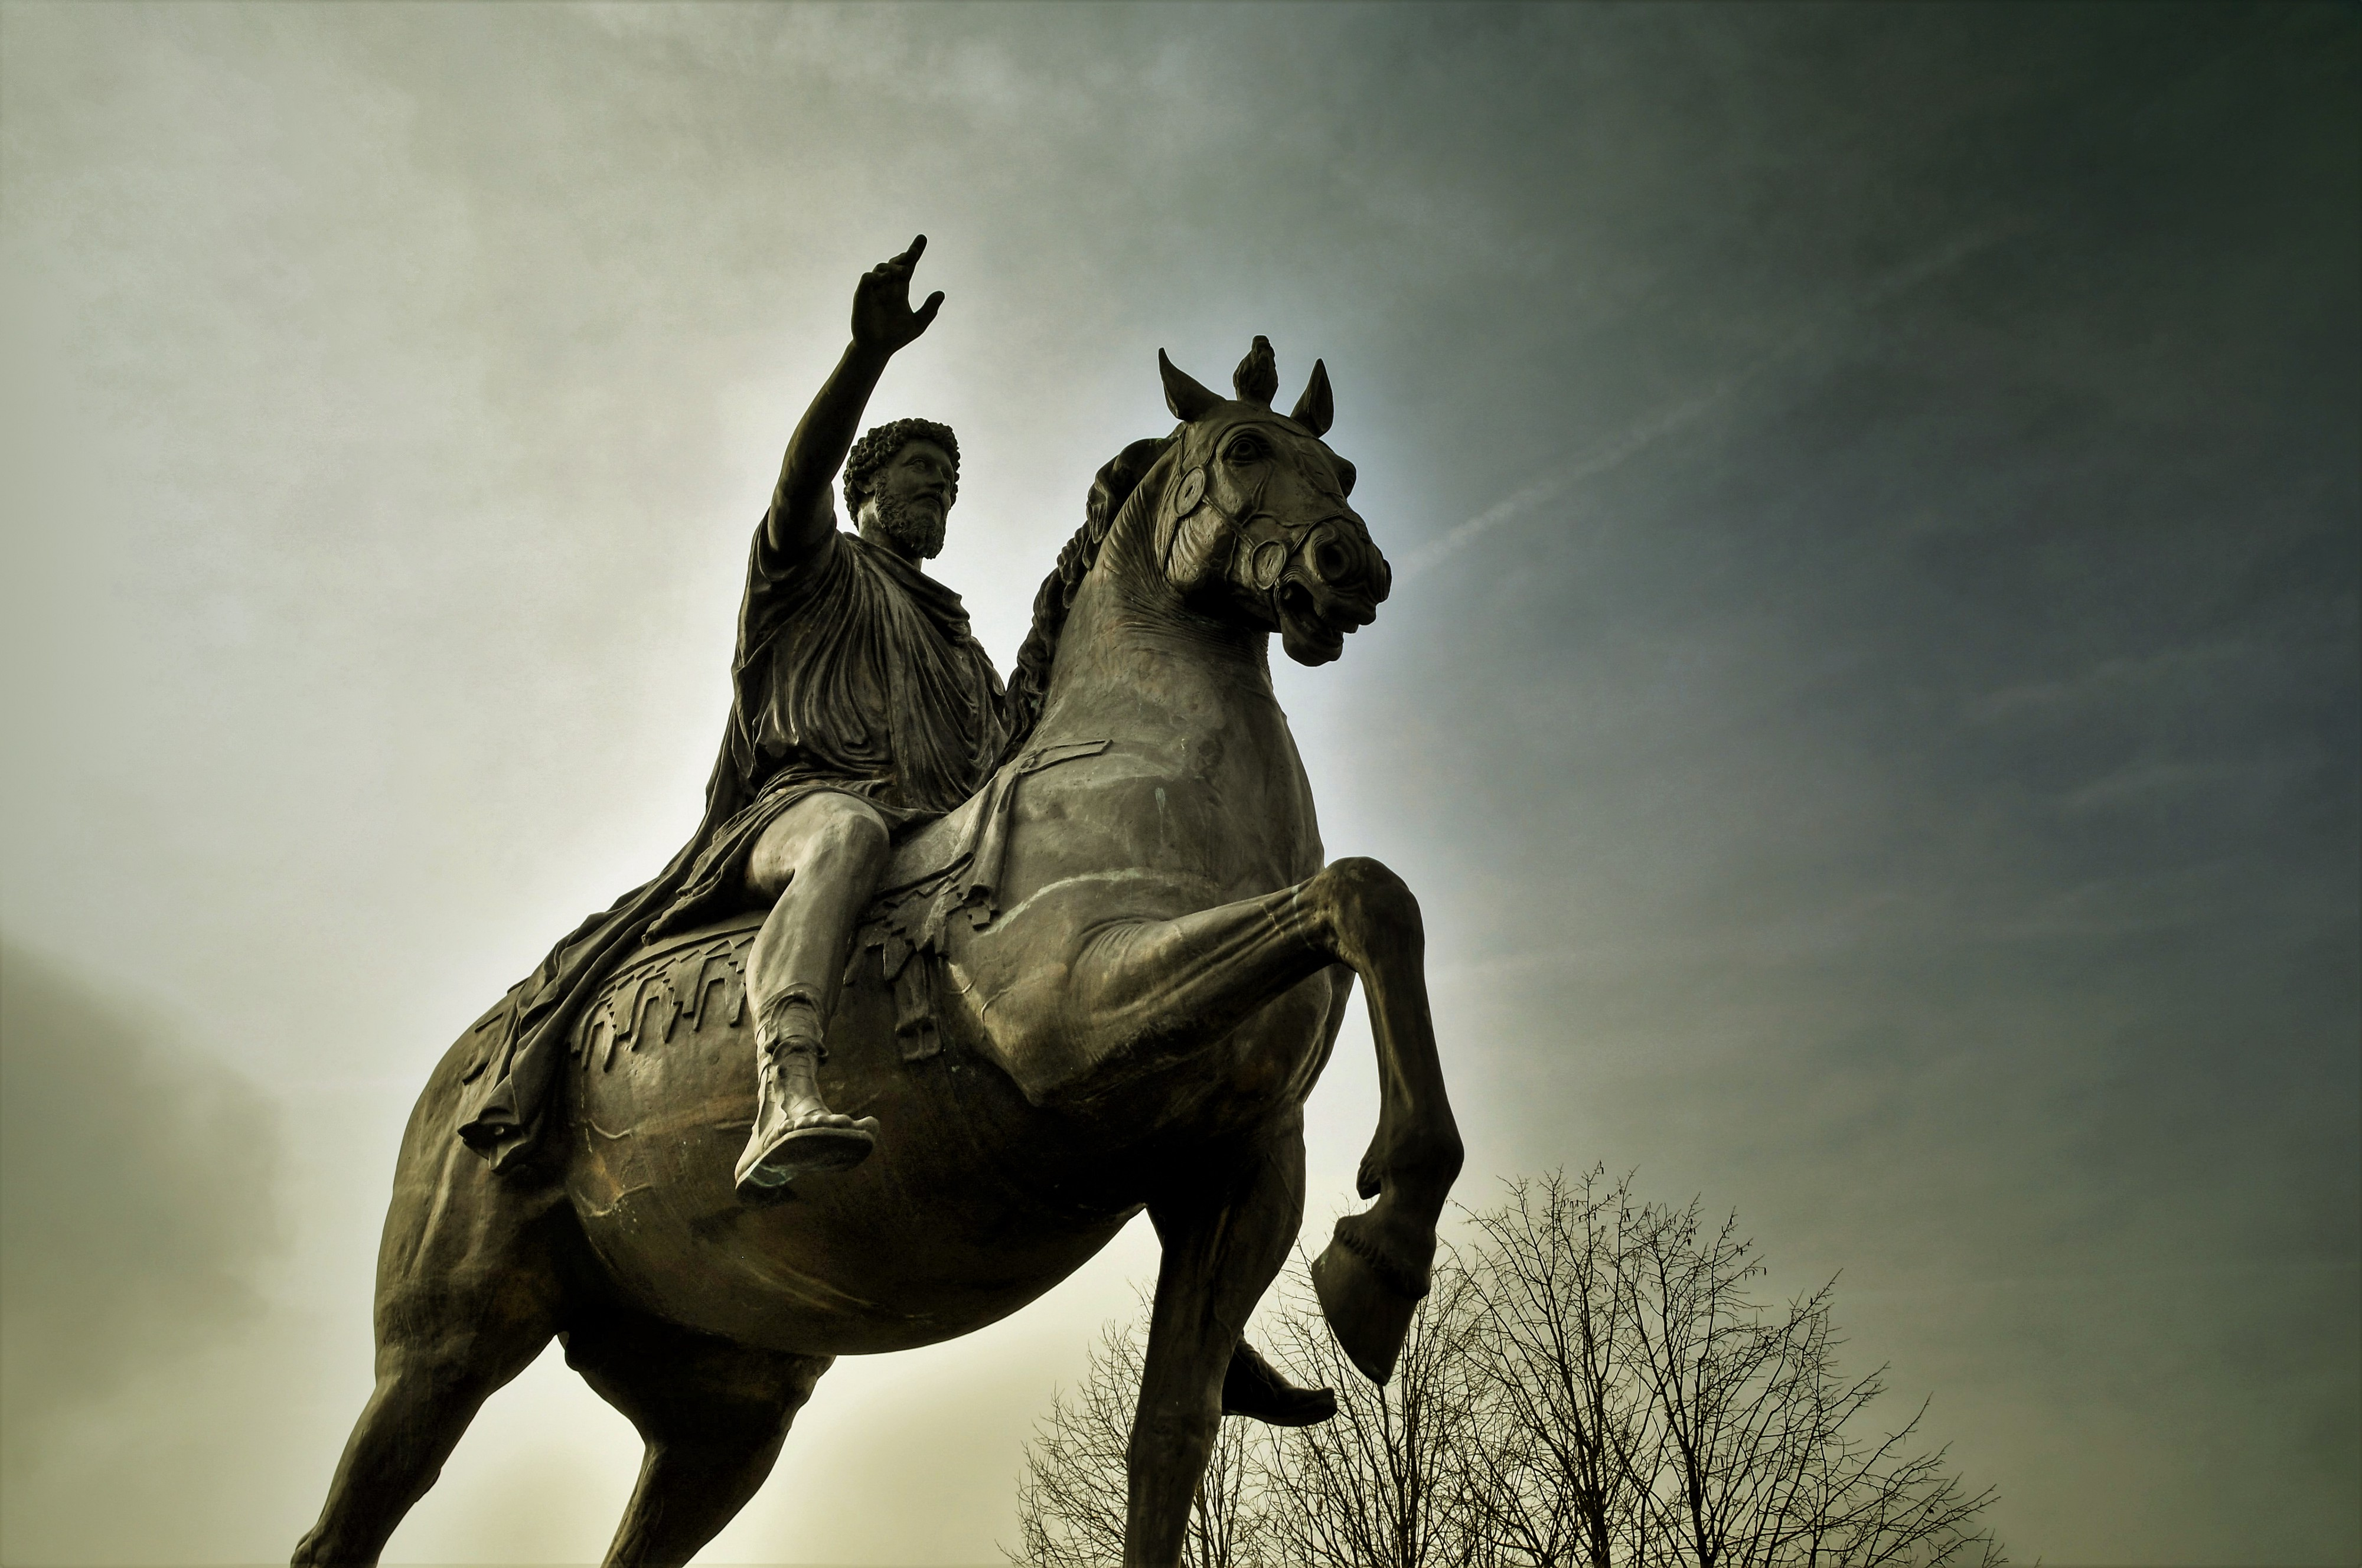 A photo of a sculpture of a man on a horse (presumably a Greek philosopher).